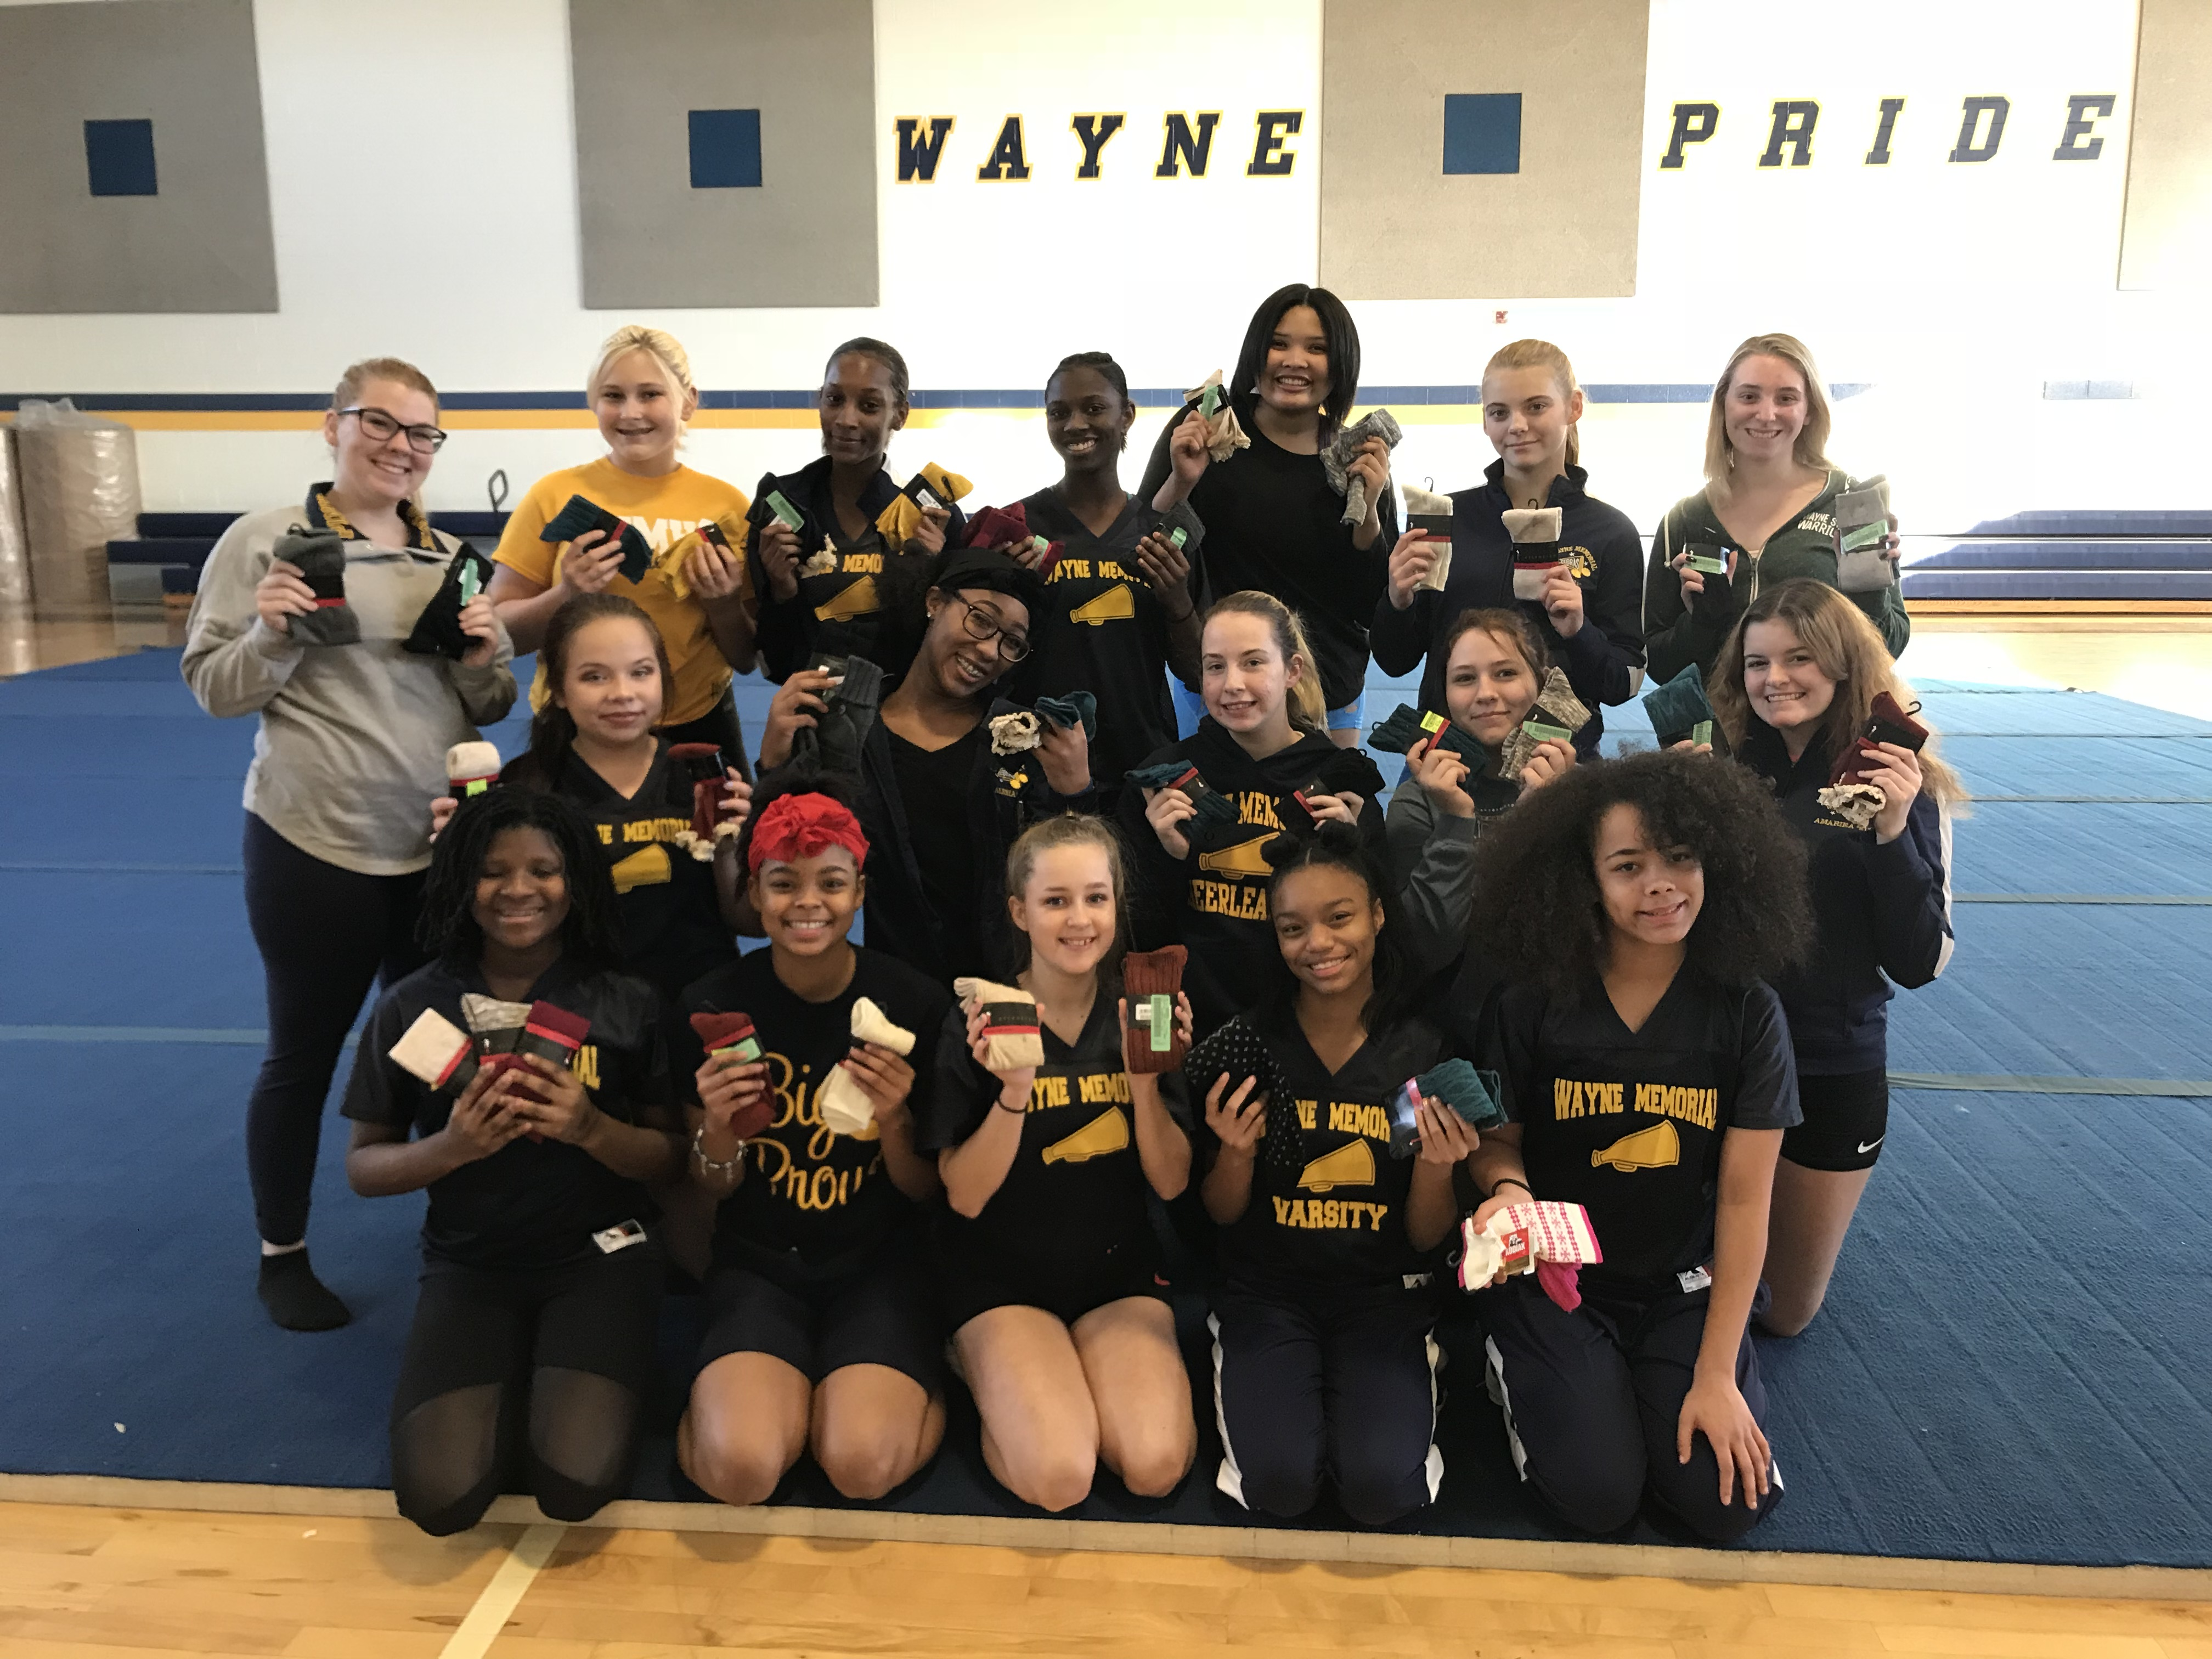 2018-11-21 - Donation from Girls Varsity Cheer team at WMHS